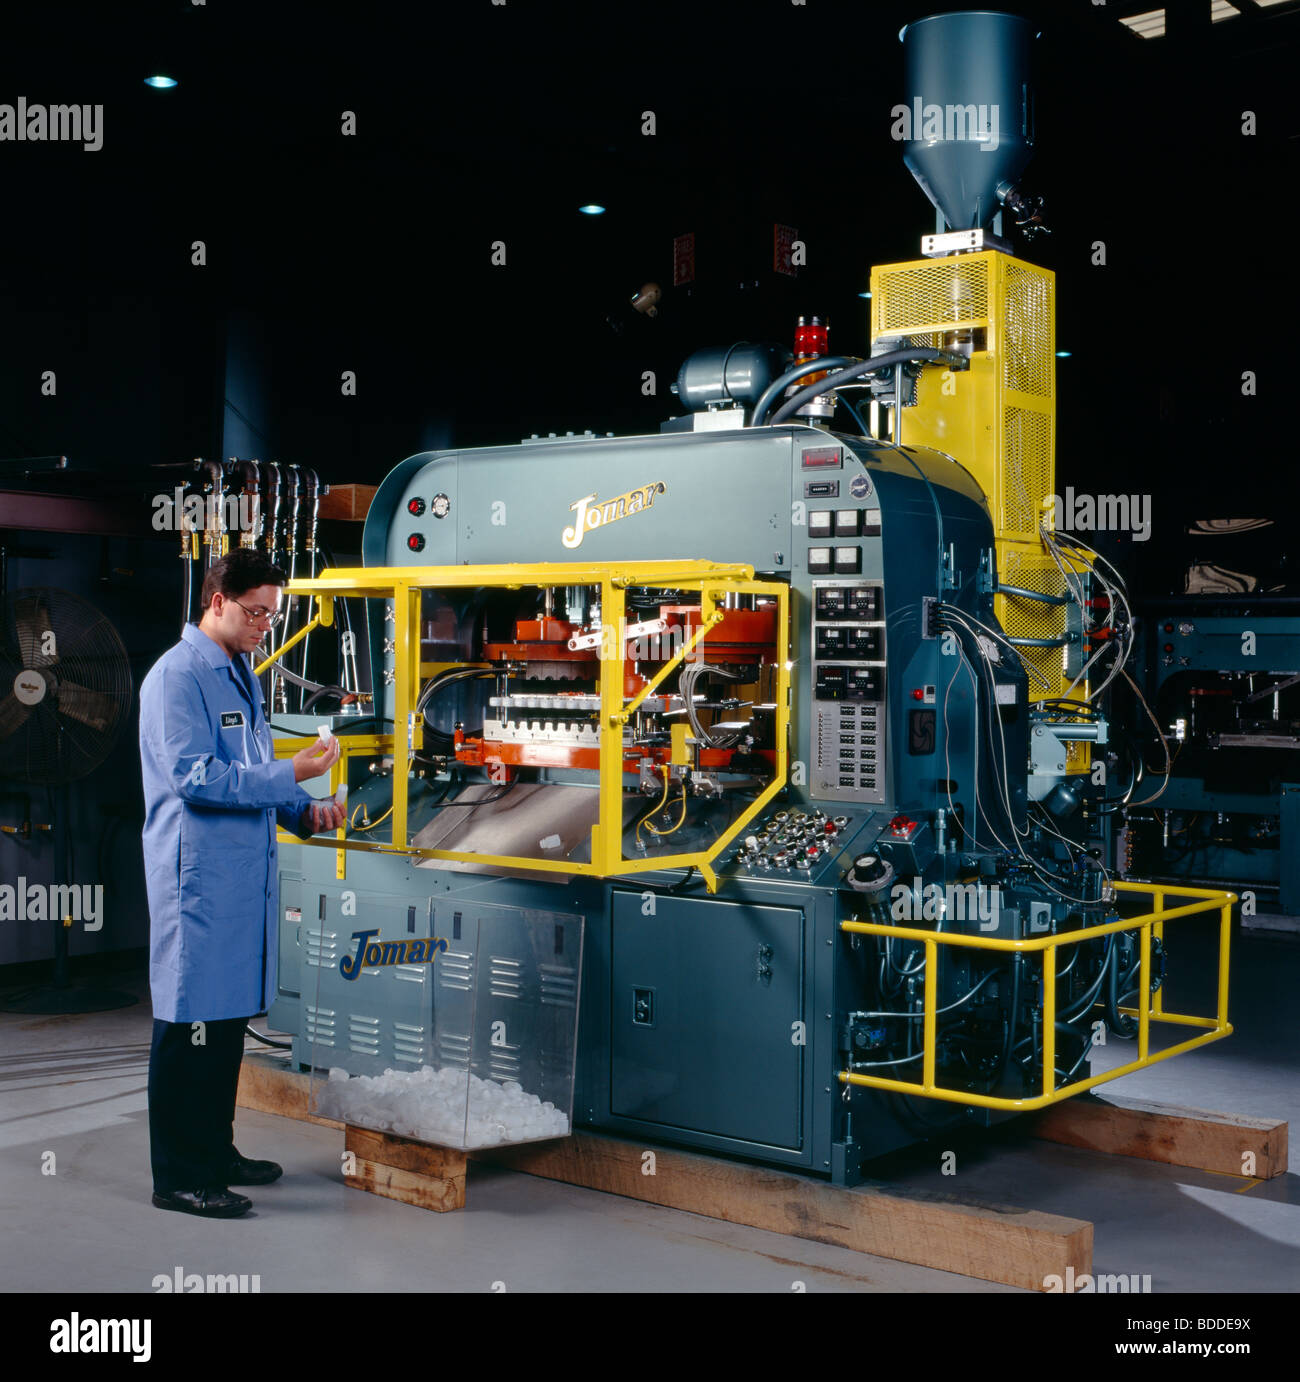 Injection blow molding machinery makes plastic containers. - Stock Image